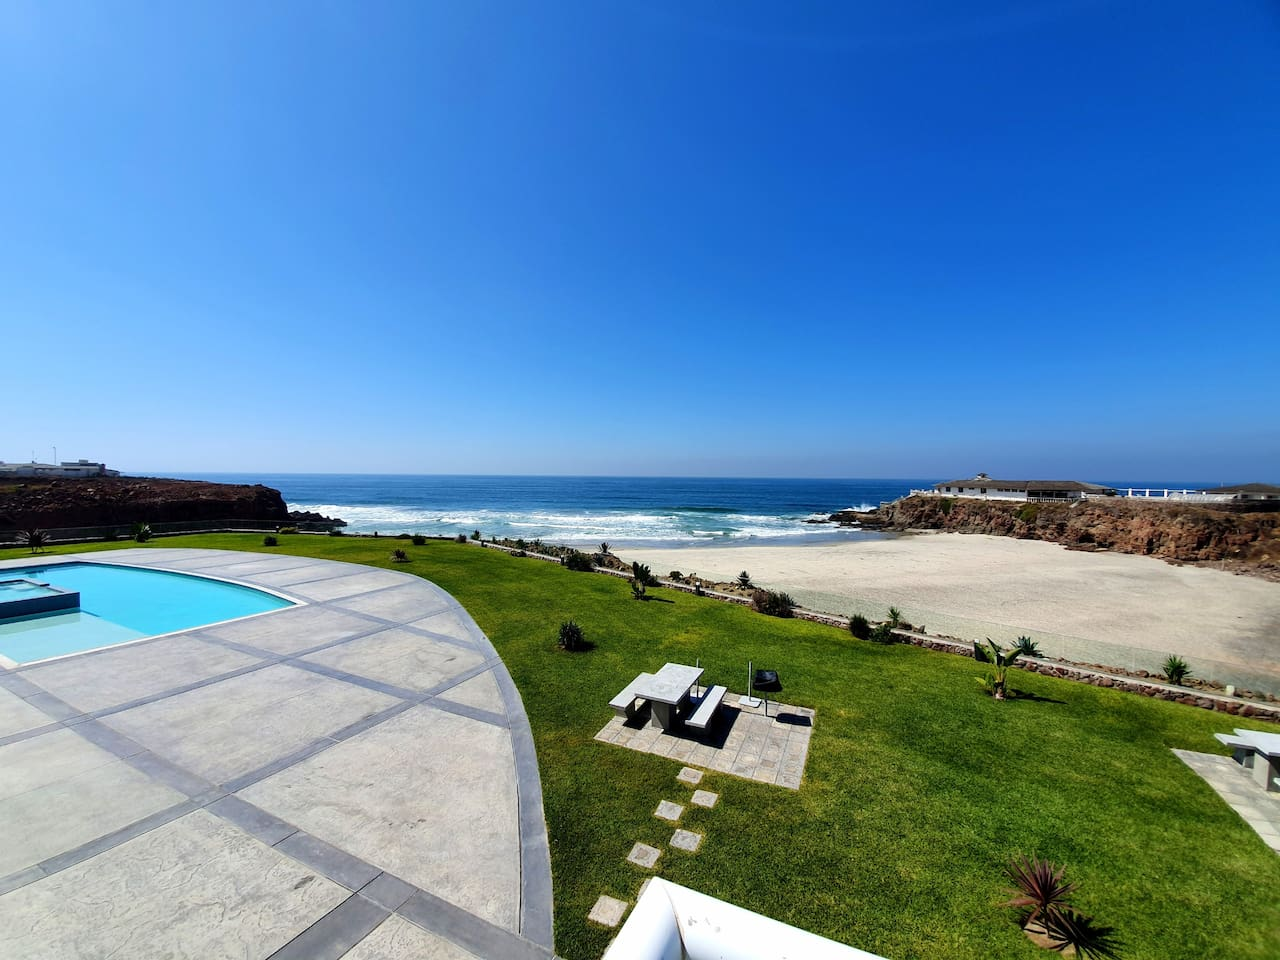 Oceanfront Pool with endless views of the rolling Pacific Ocean.